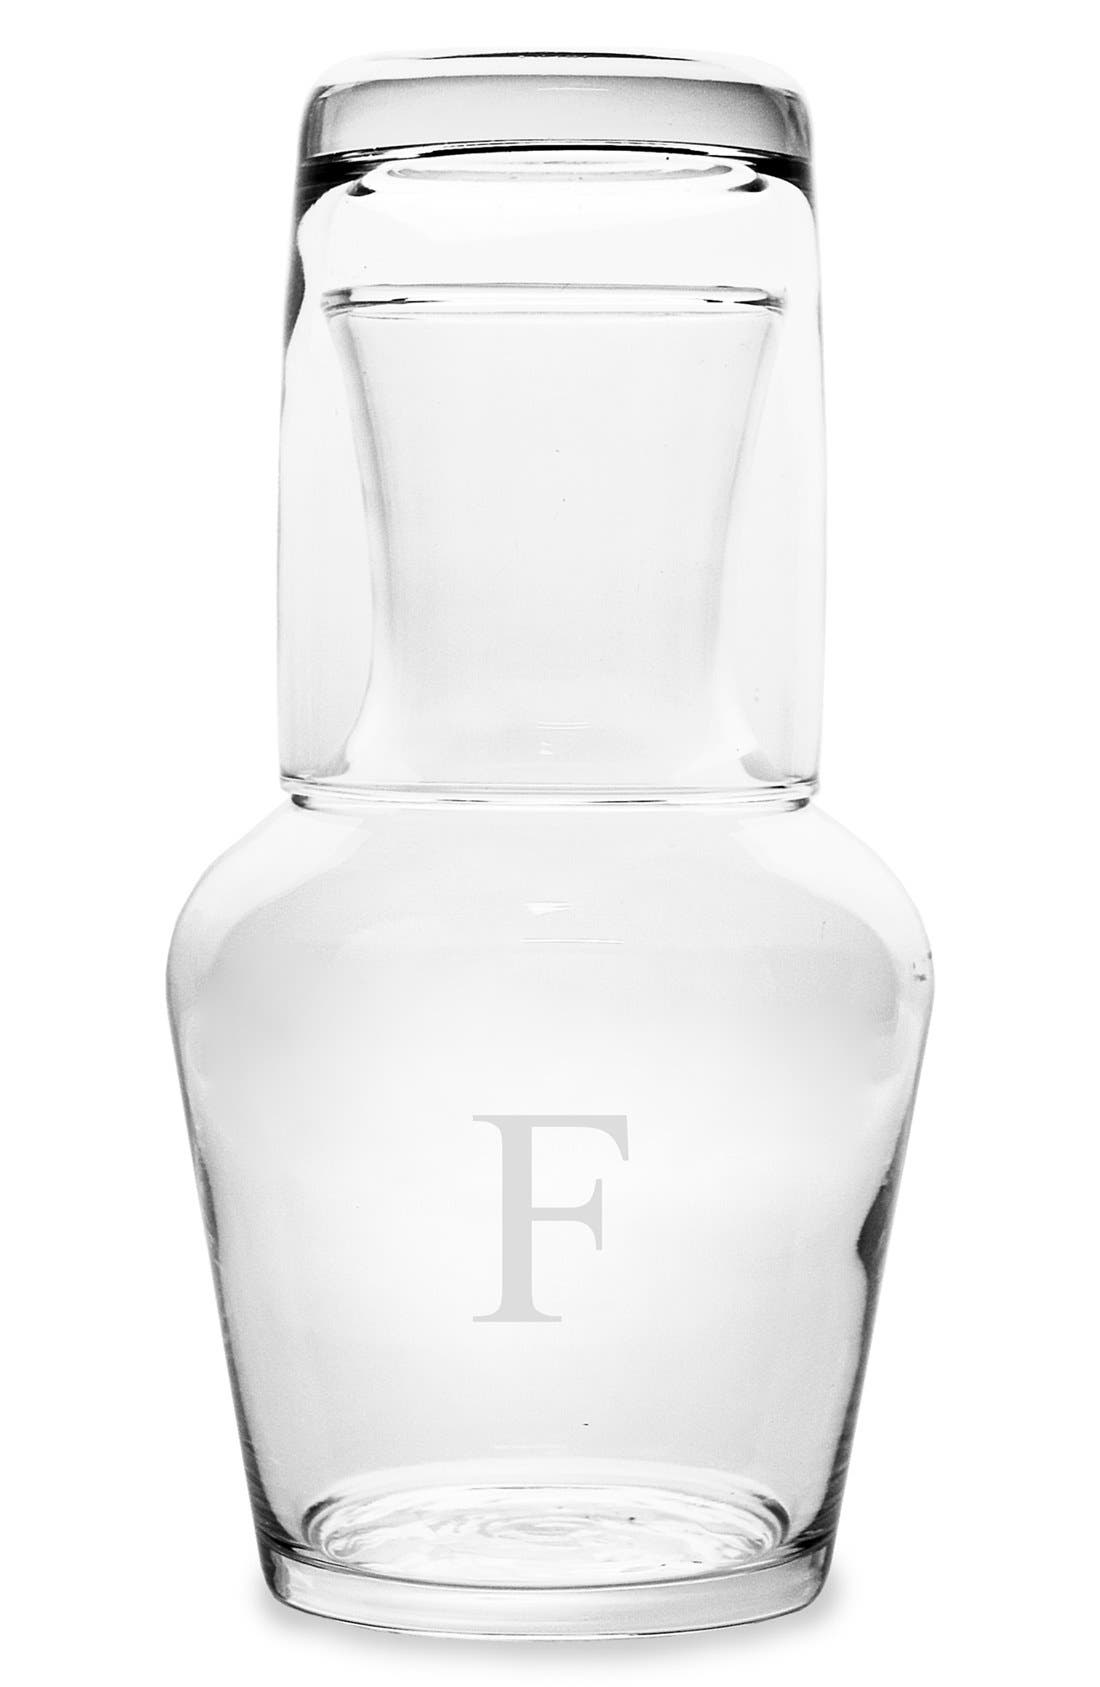 Main Image - Cathy's Concepts Monogram Bedside Water Carafe Set